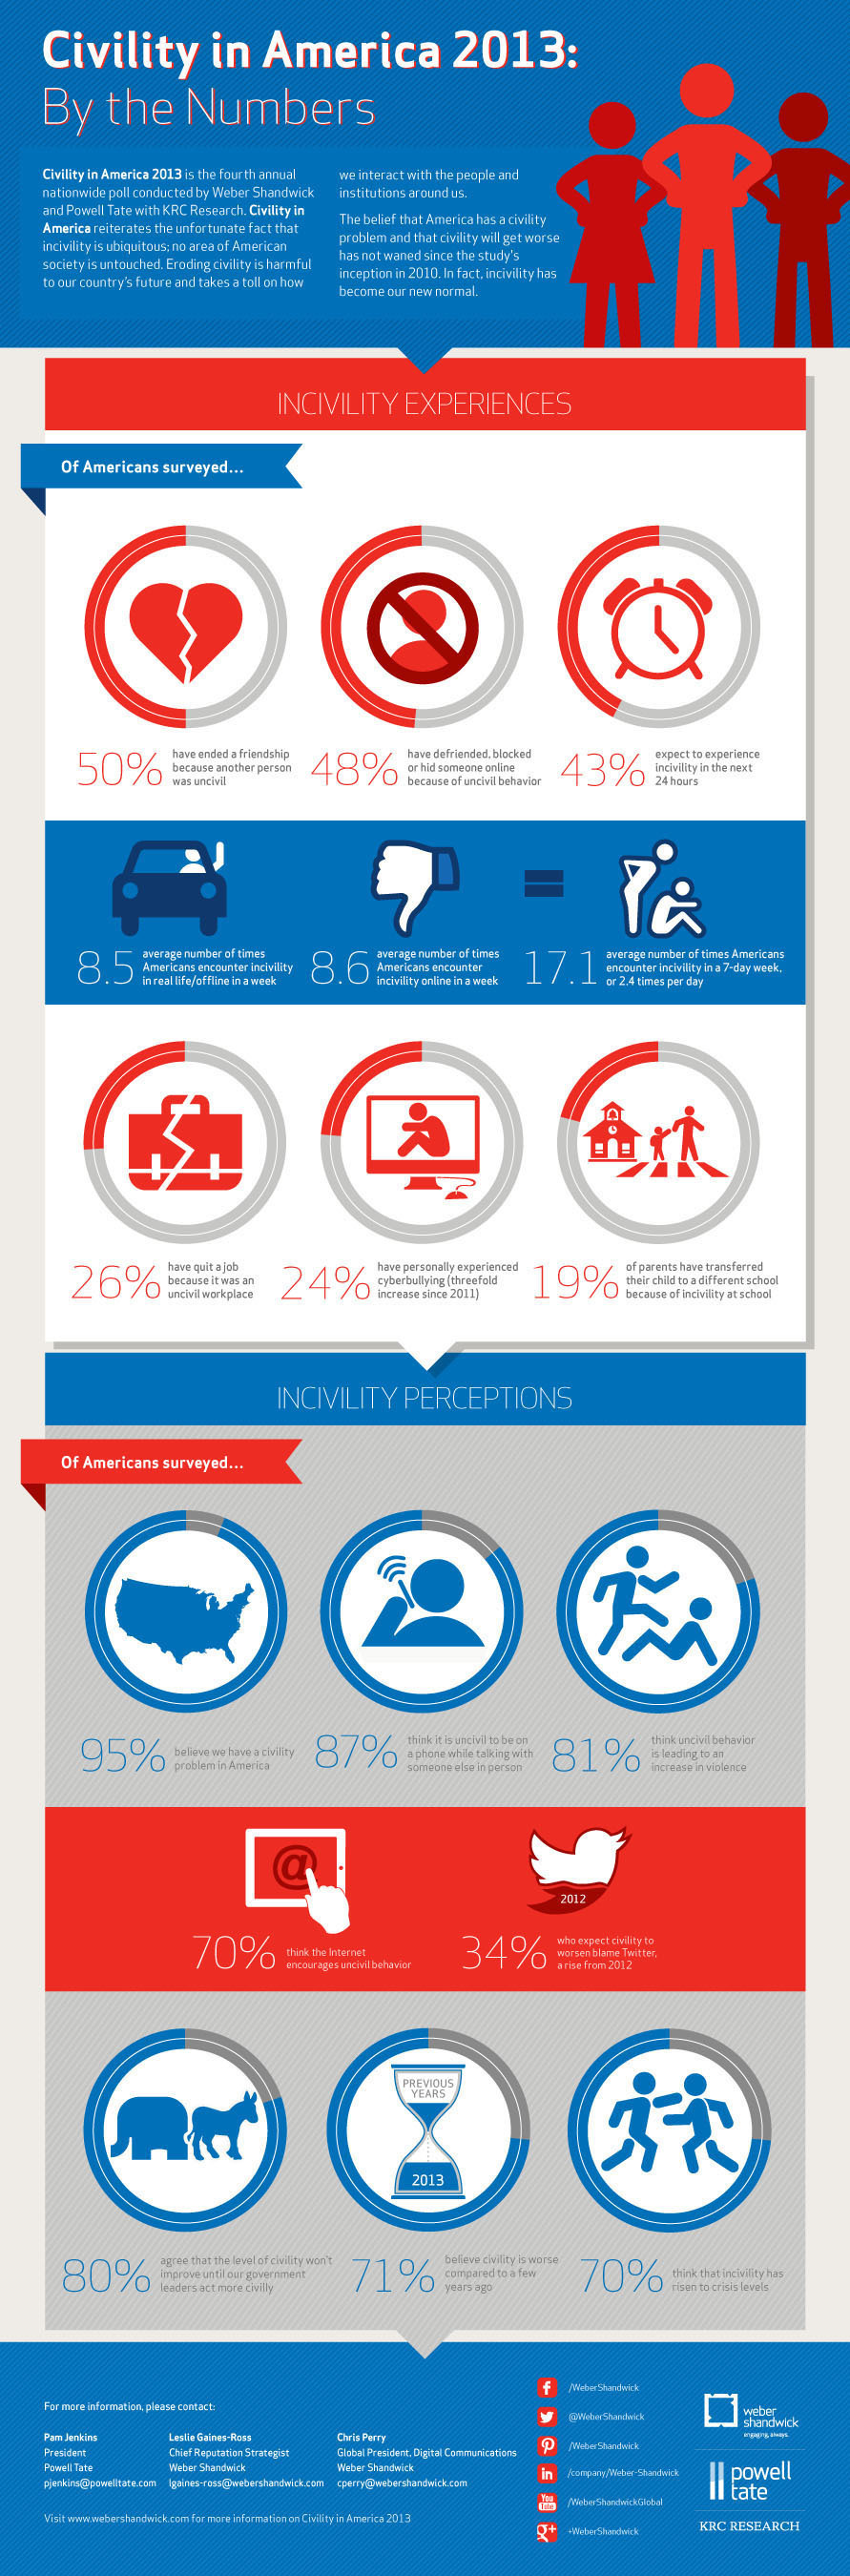 Civility in America: By the Numbers.  (PRNewsFoto/Weber Shandwick)